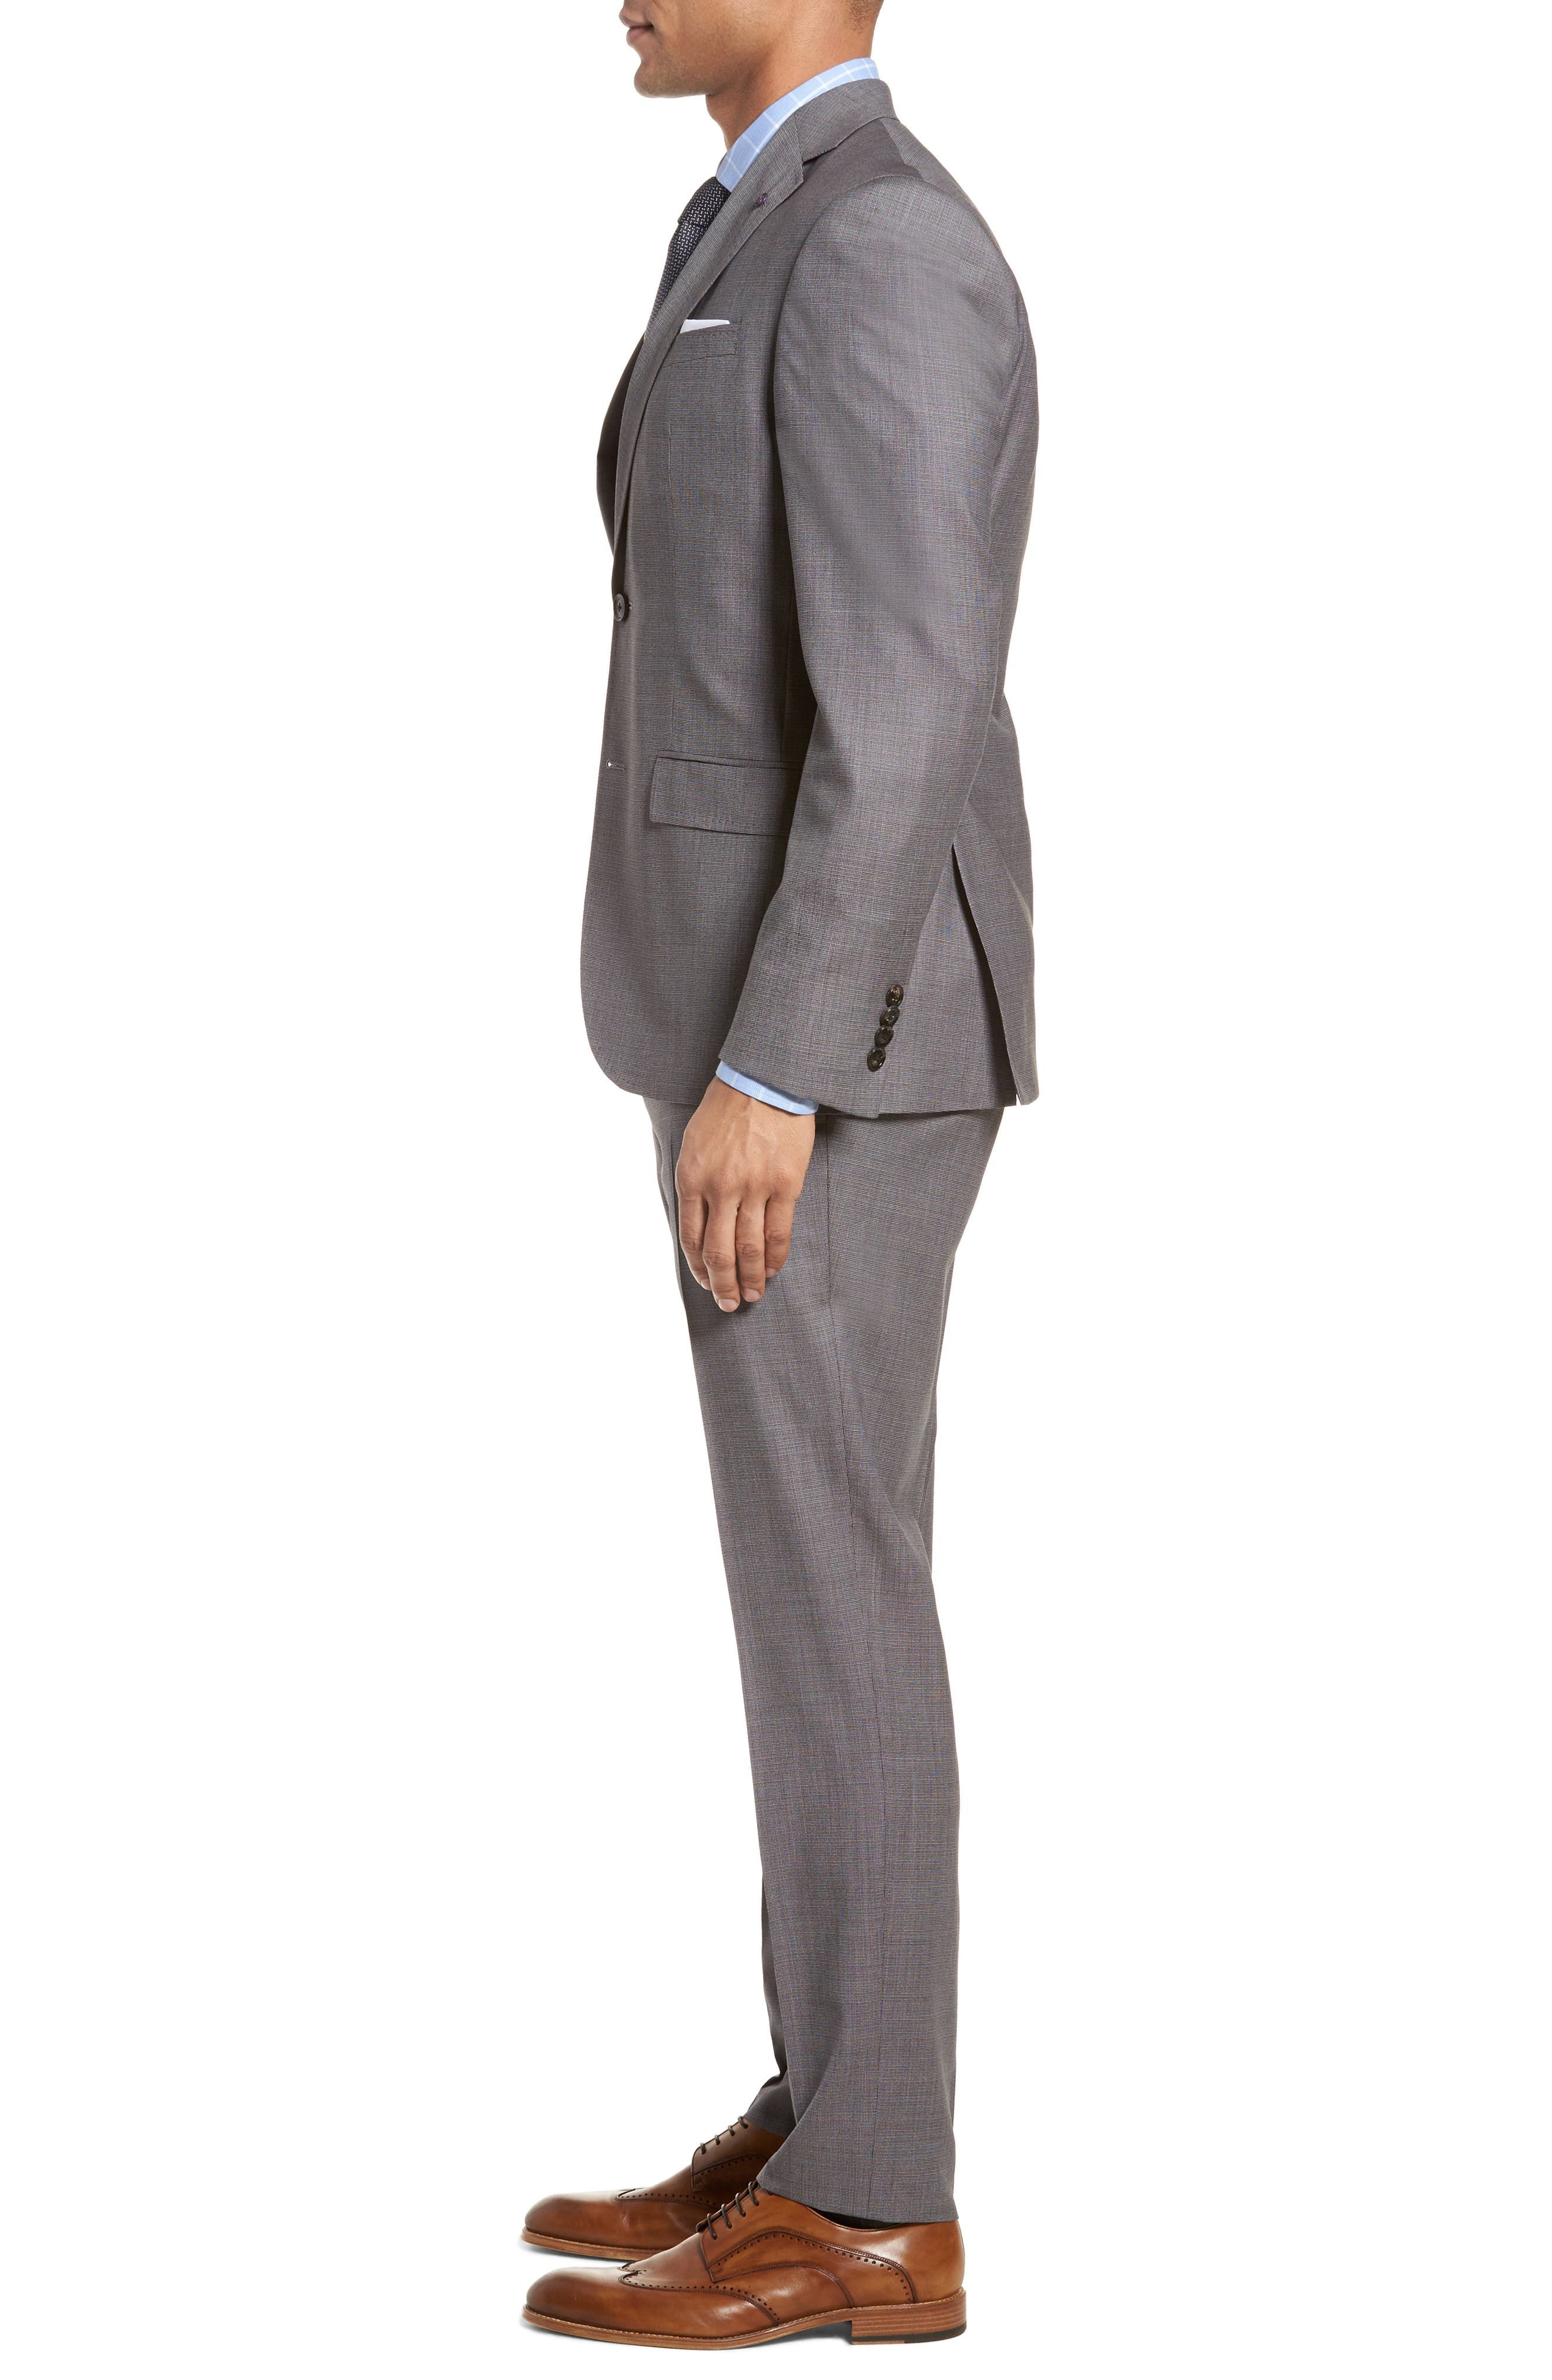 Roger Extra Slim Fit Solid Wool Suit,                             Alternate thumbnail 3, color,